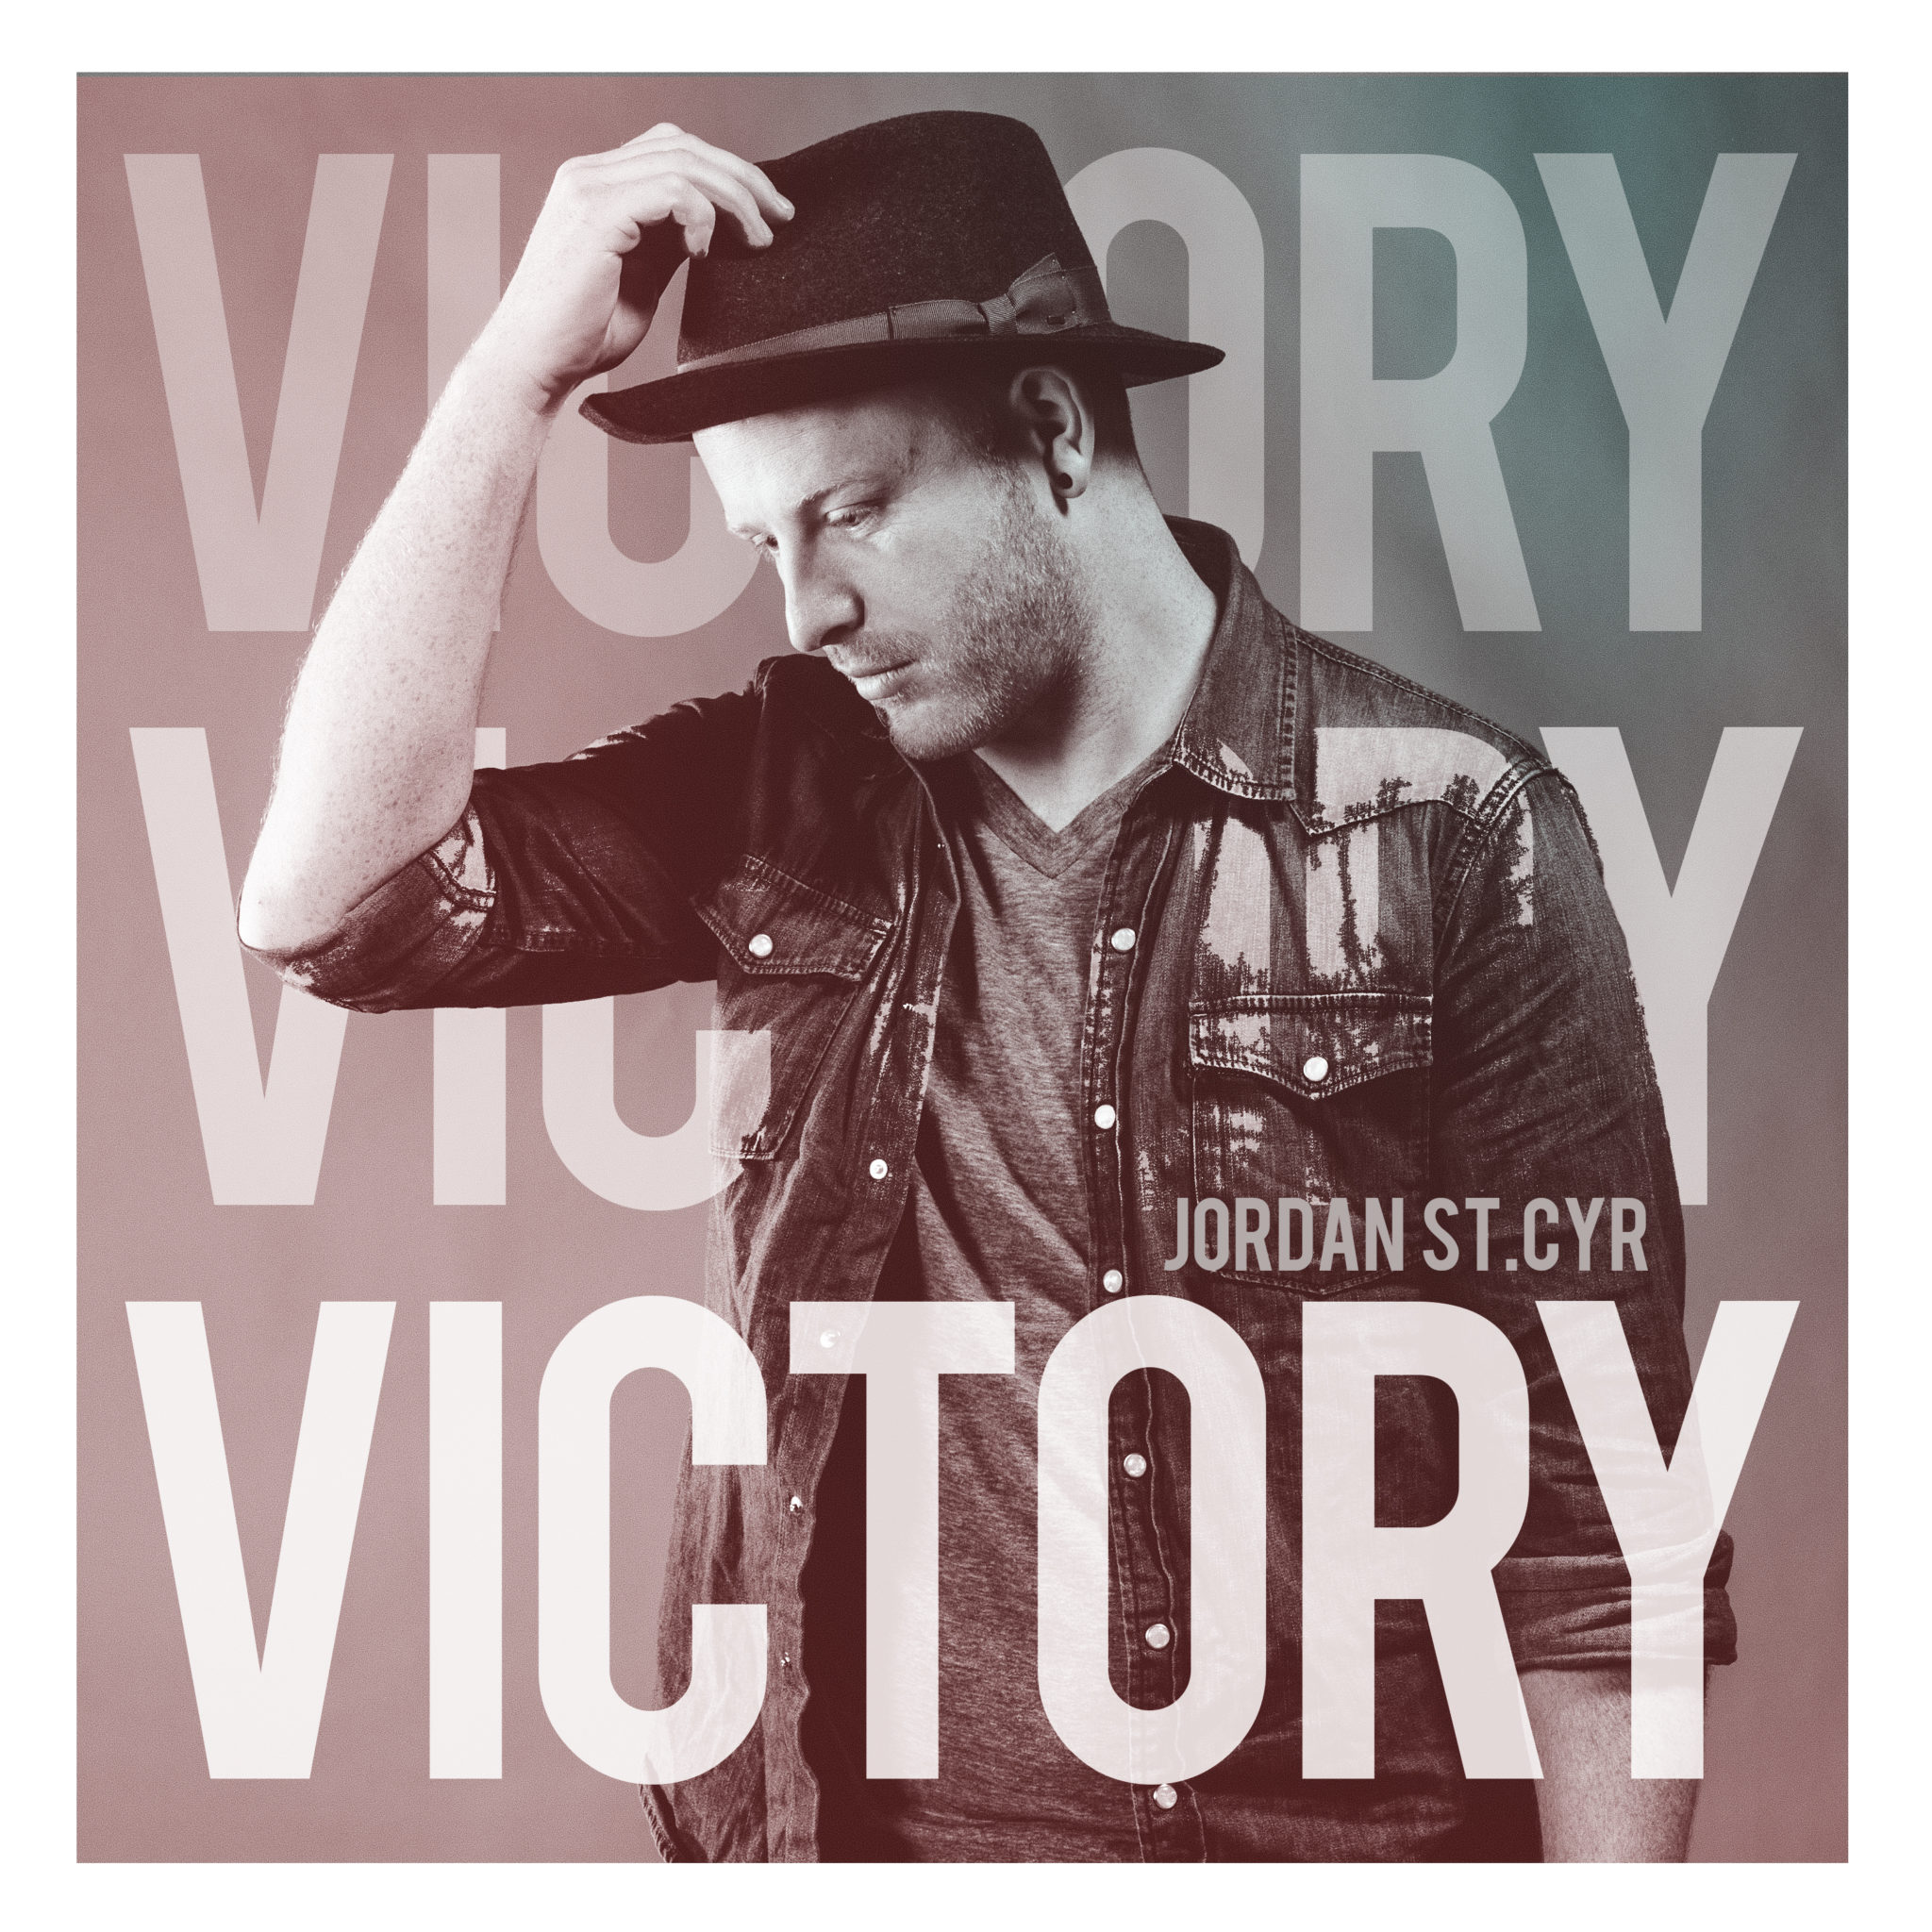 CANADIAN JORDAN ST.CYR RELEASES NEW SINGLE IN U.S. MARKETS